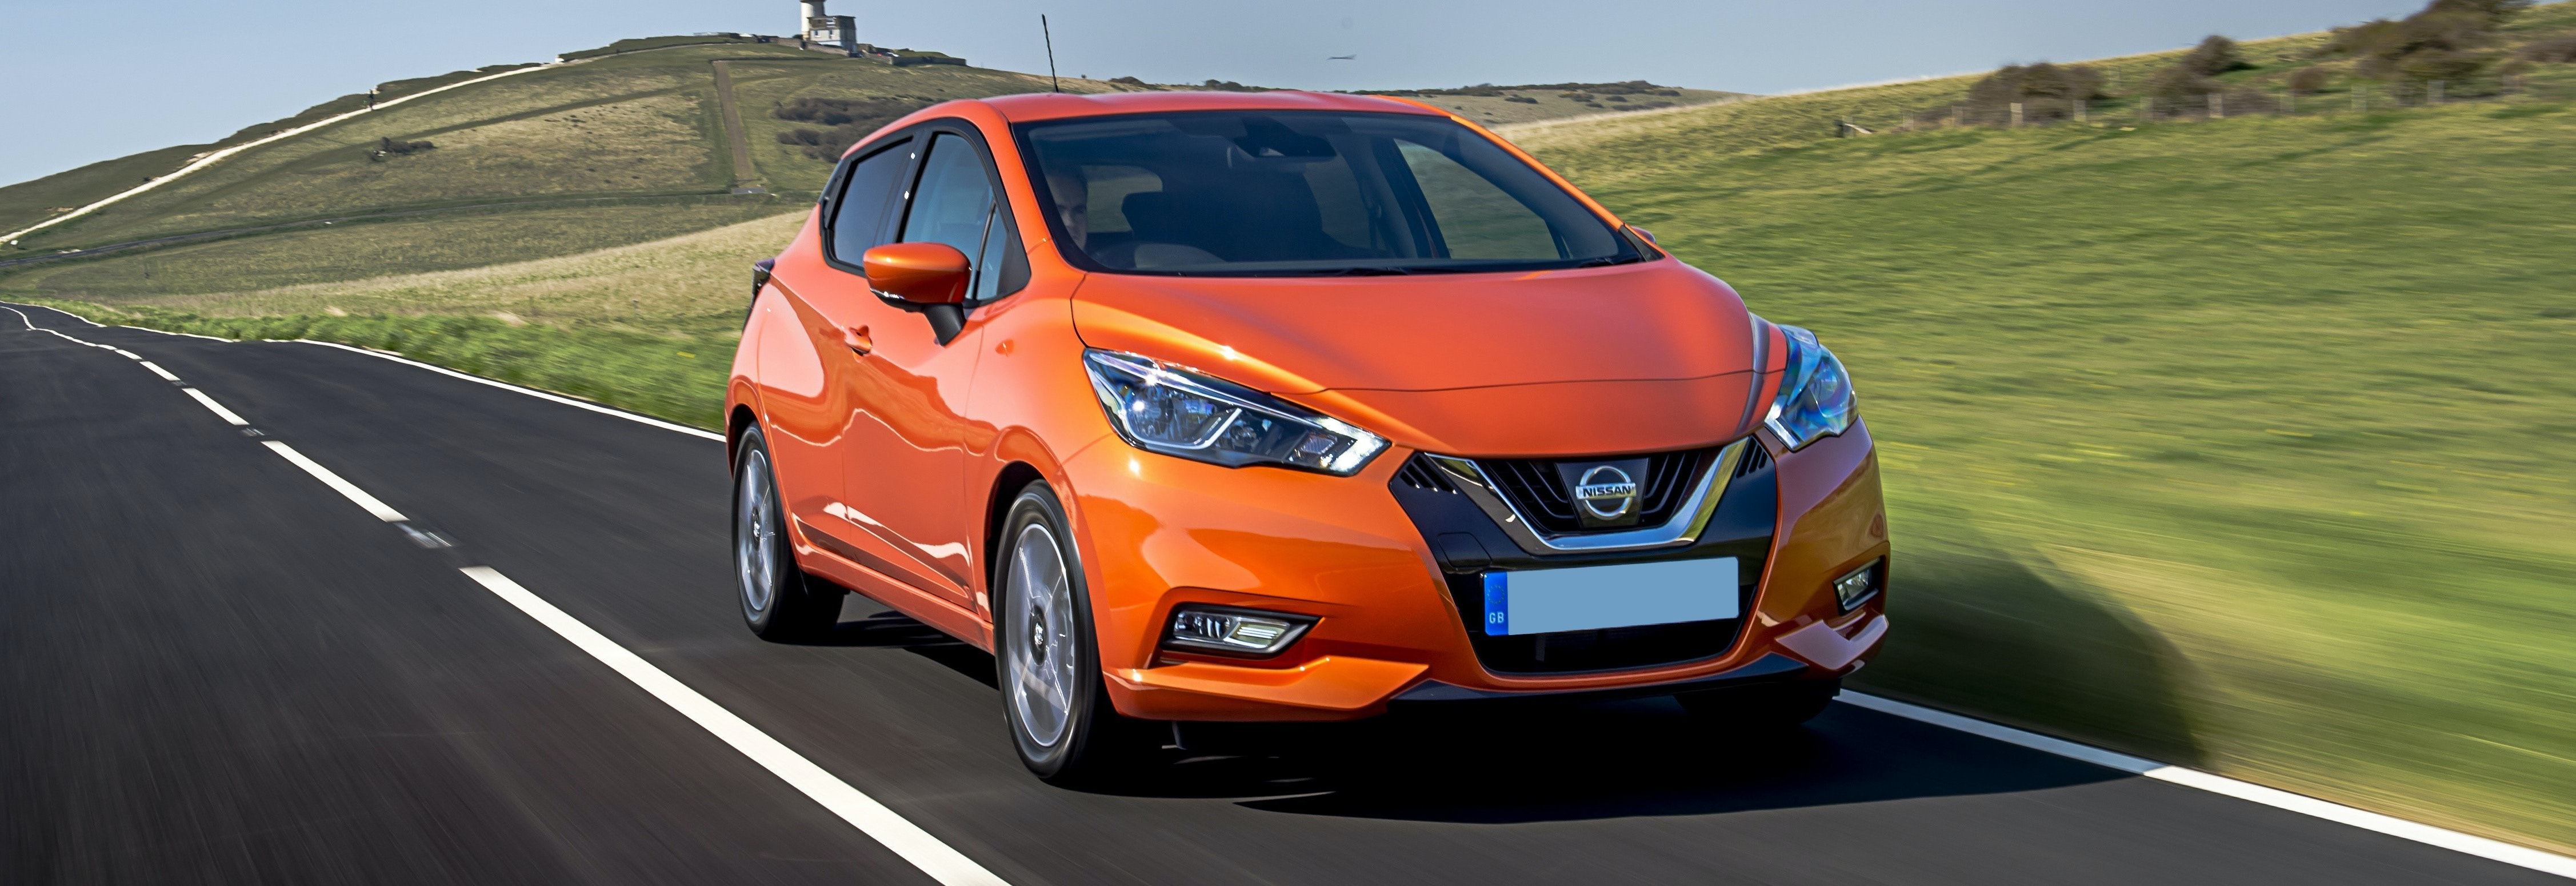 2018 nissan micra orange driving front